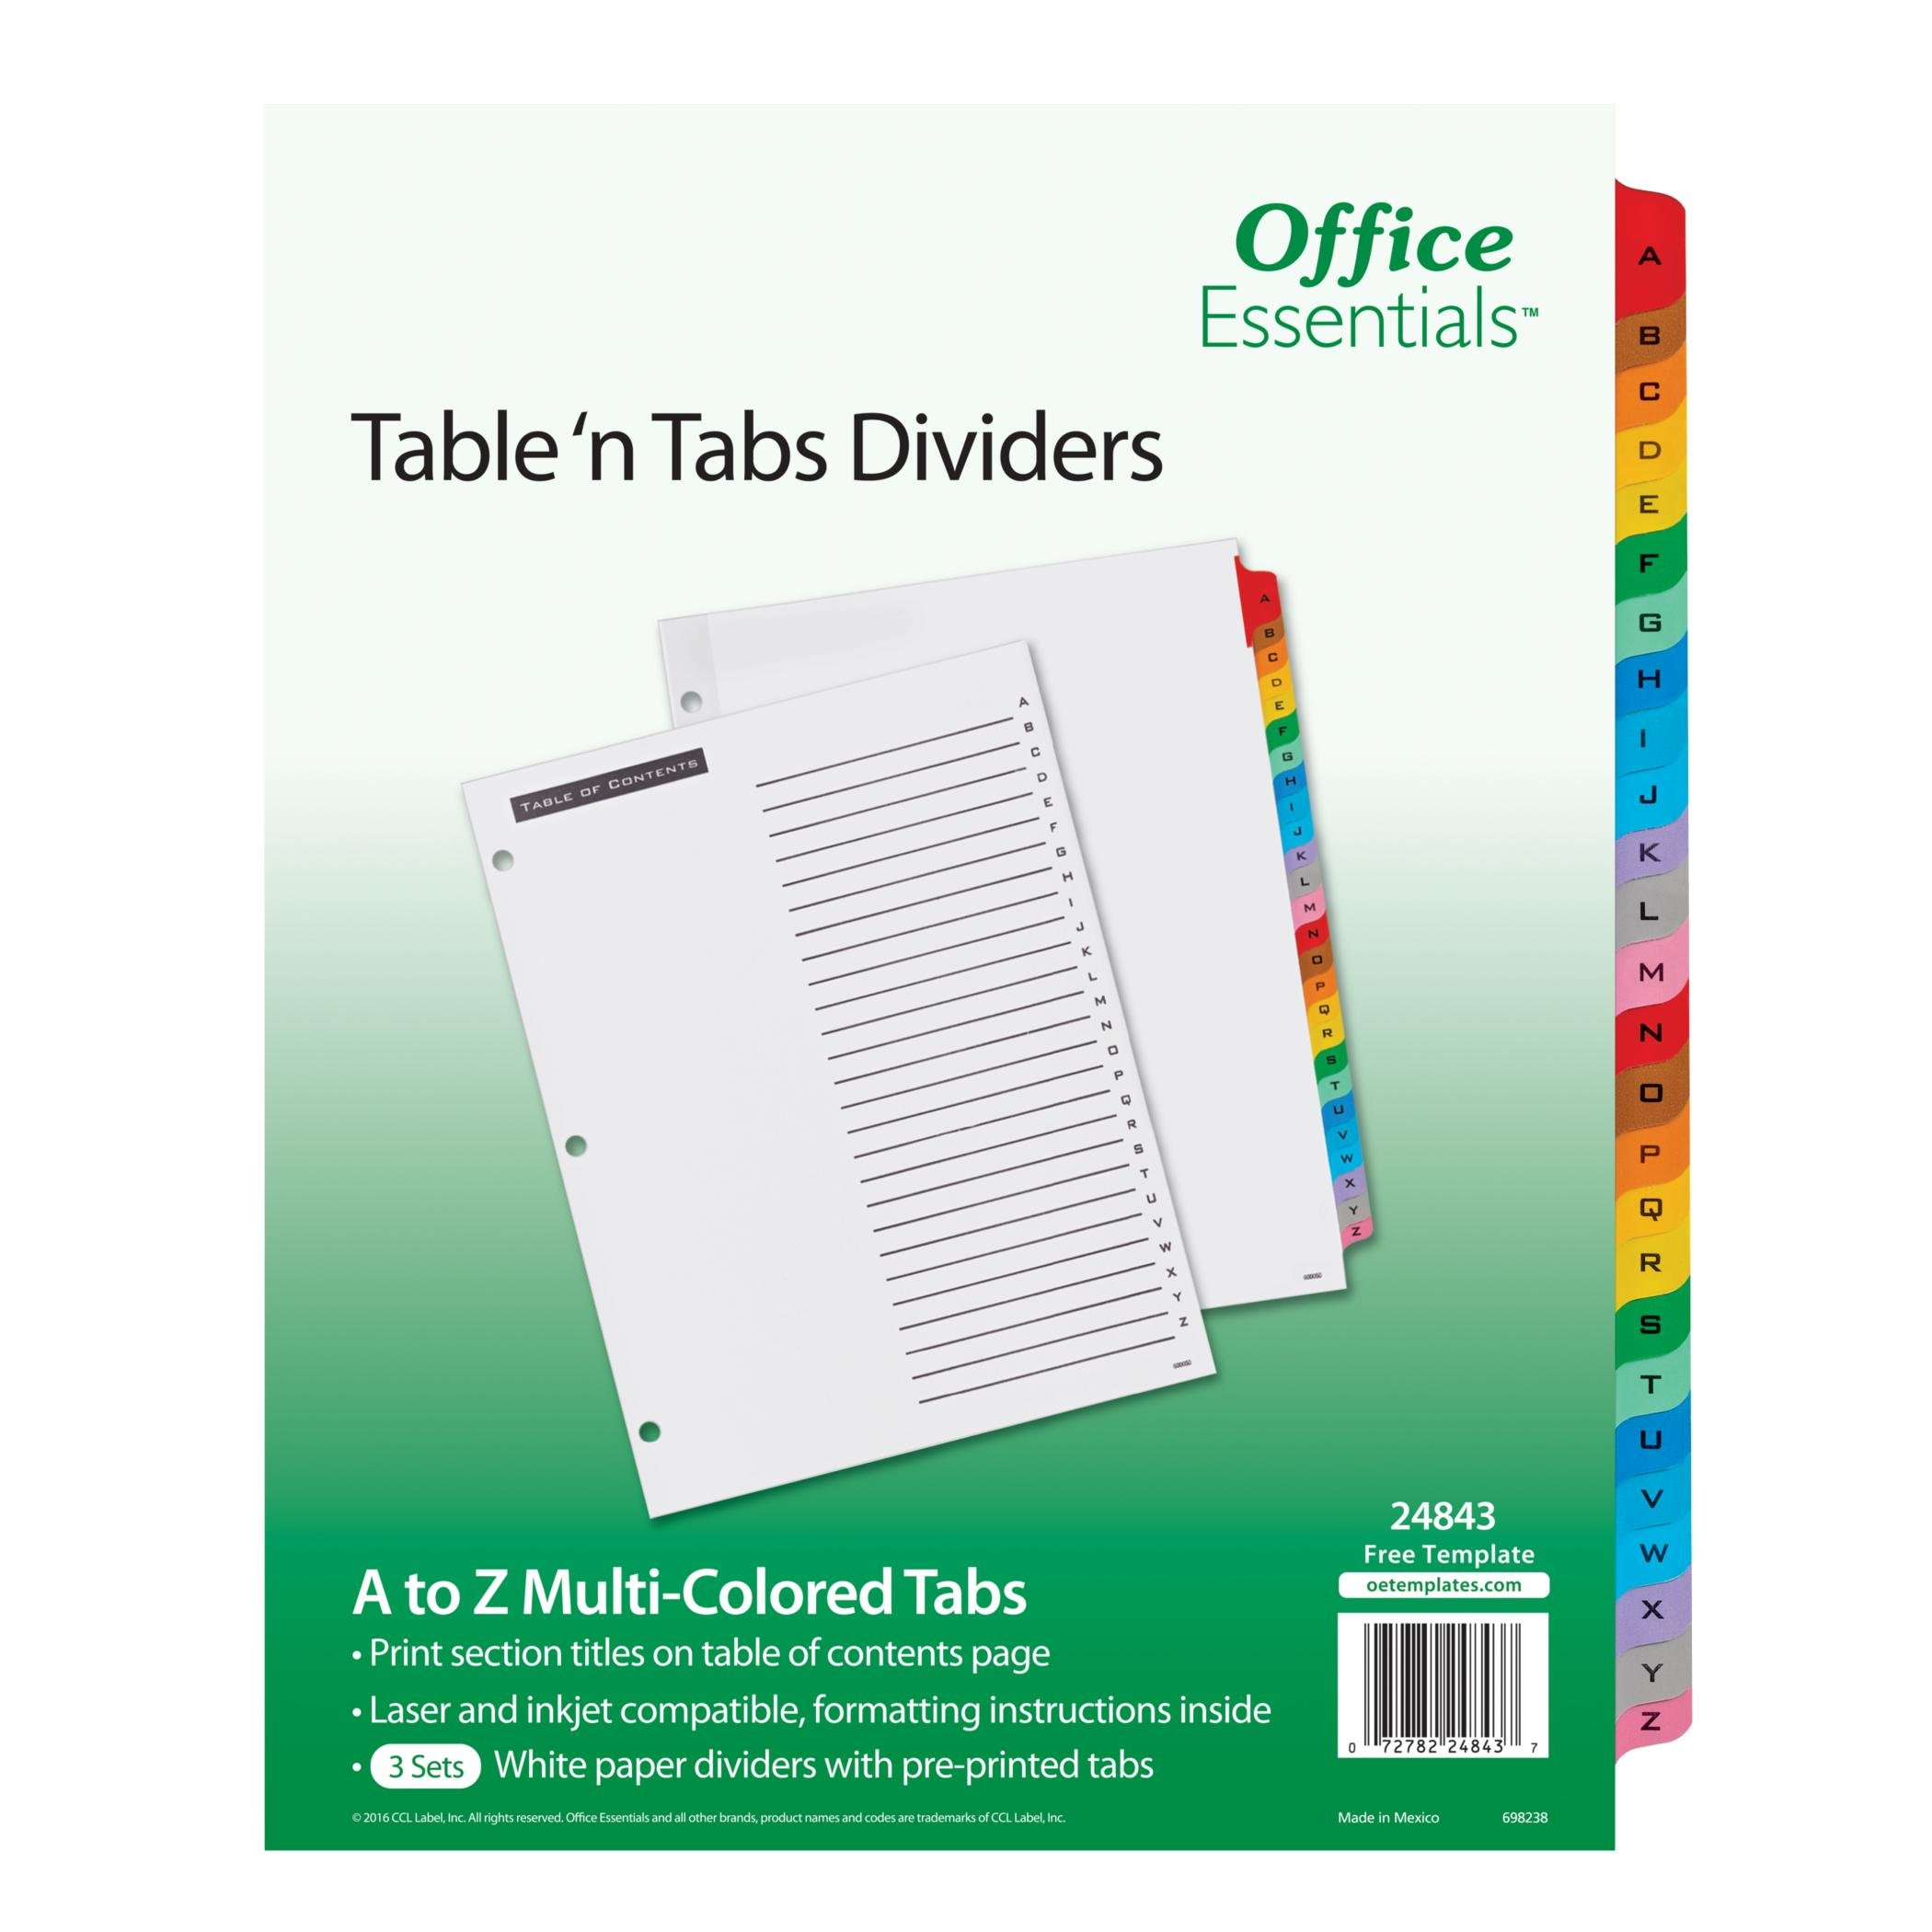 Office Essentials Table 'n Tabs Dividers, 8-1/2'' x 11'', A-Z Tab, Multicolor Tab, Laser/Inkjet, 3 Sets (24843)